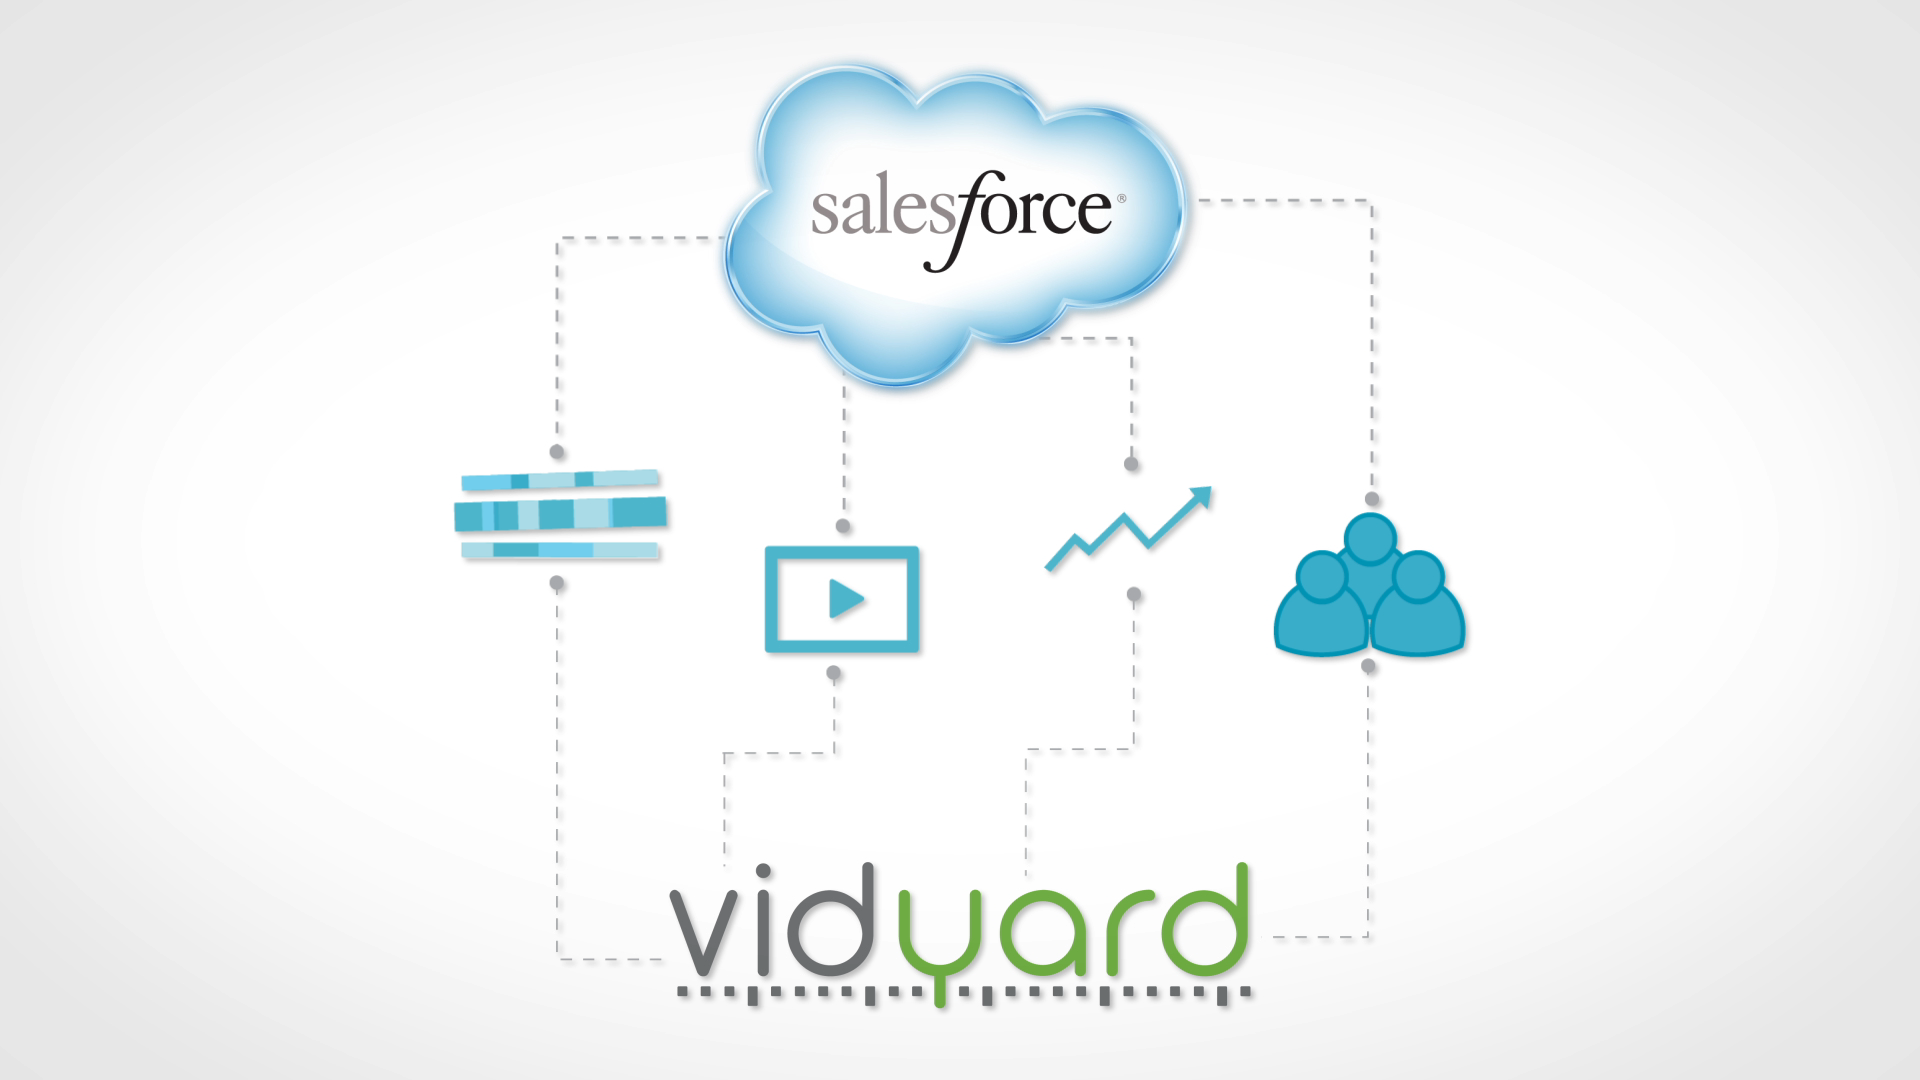 Say Hello to Video in Salesforce!